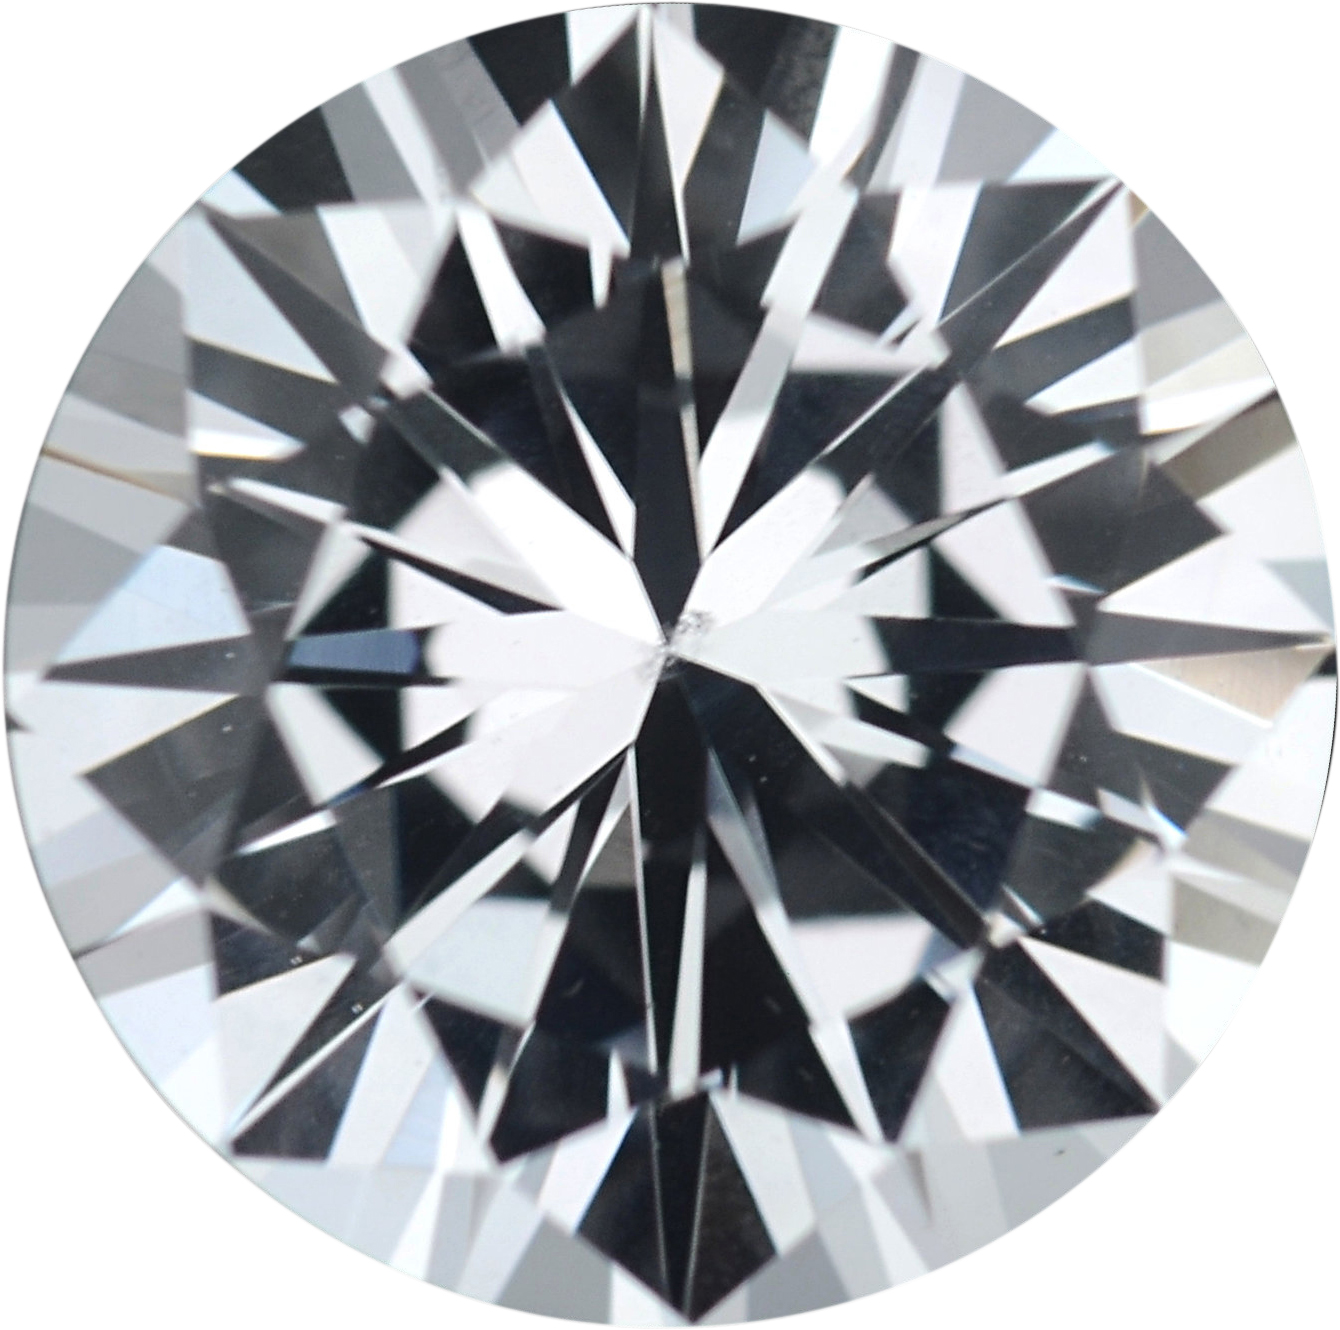 1.41 carats White Loose Sapphire Gemstone in Round Cut, 6.86 mm